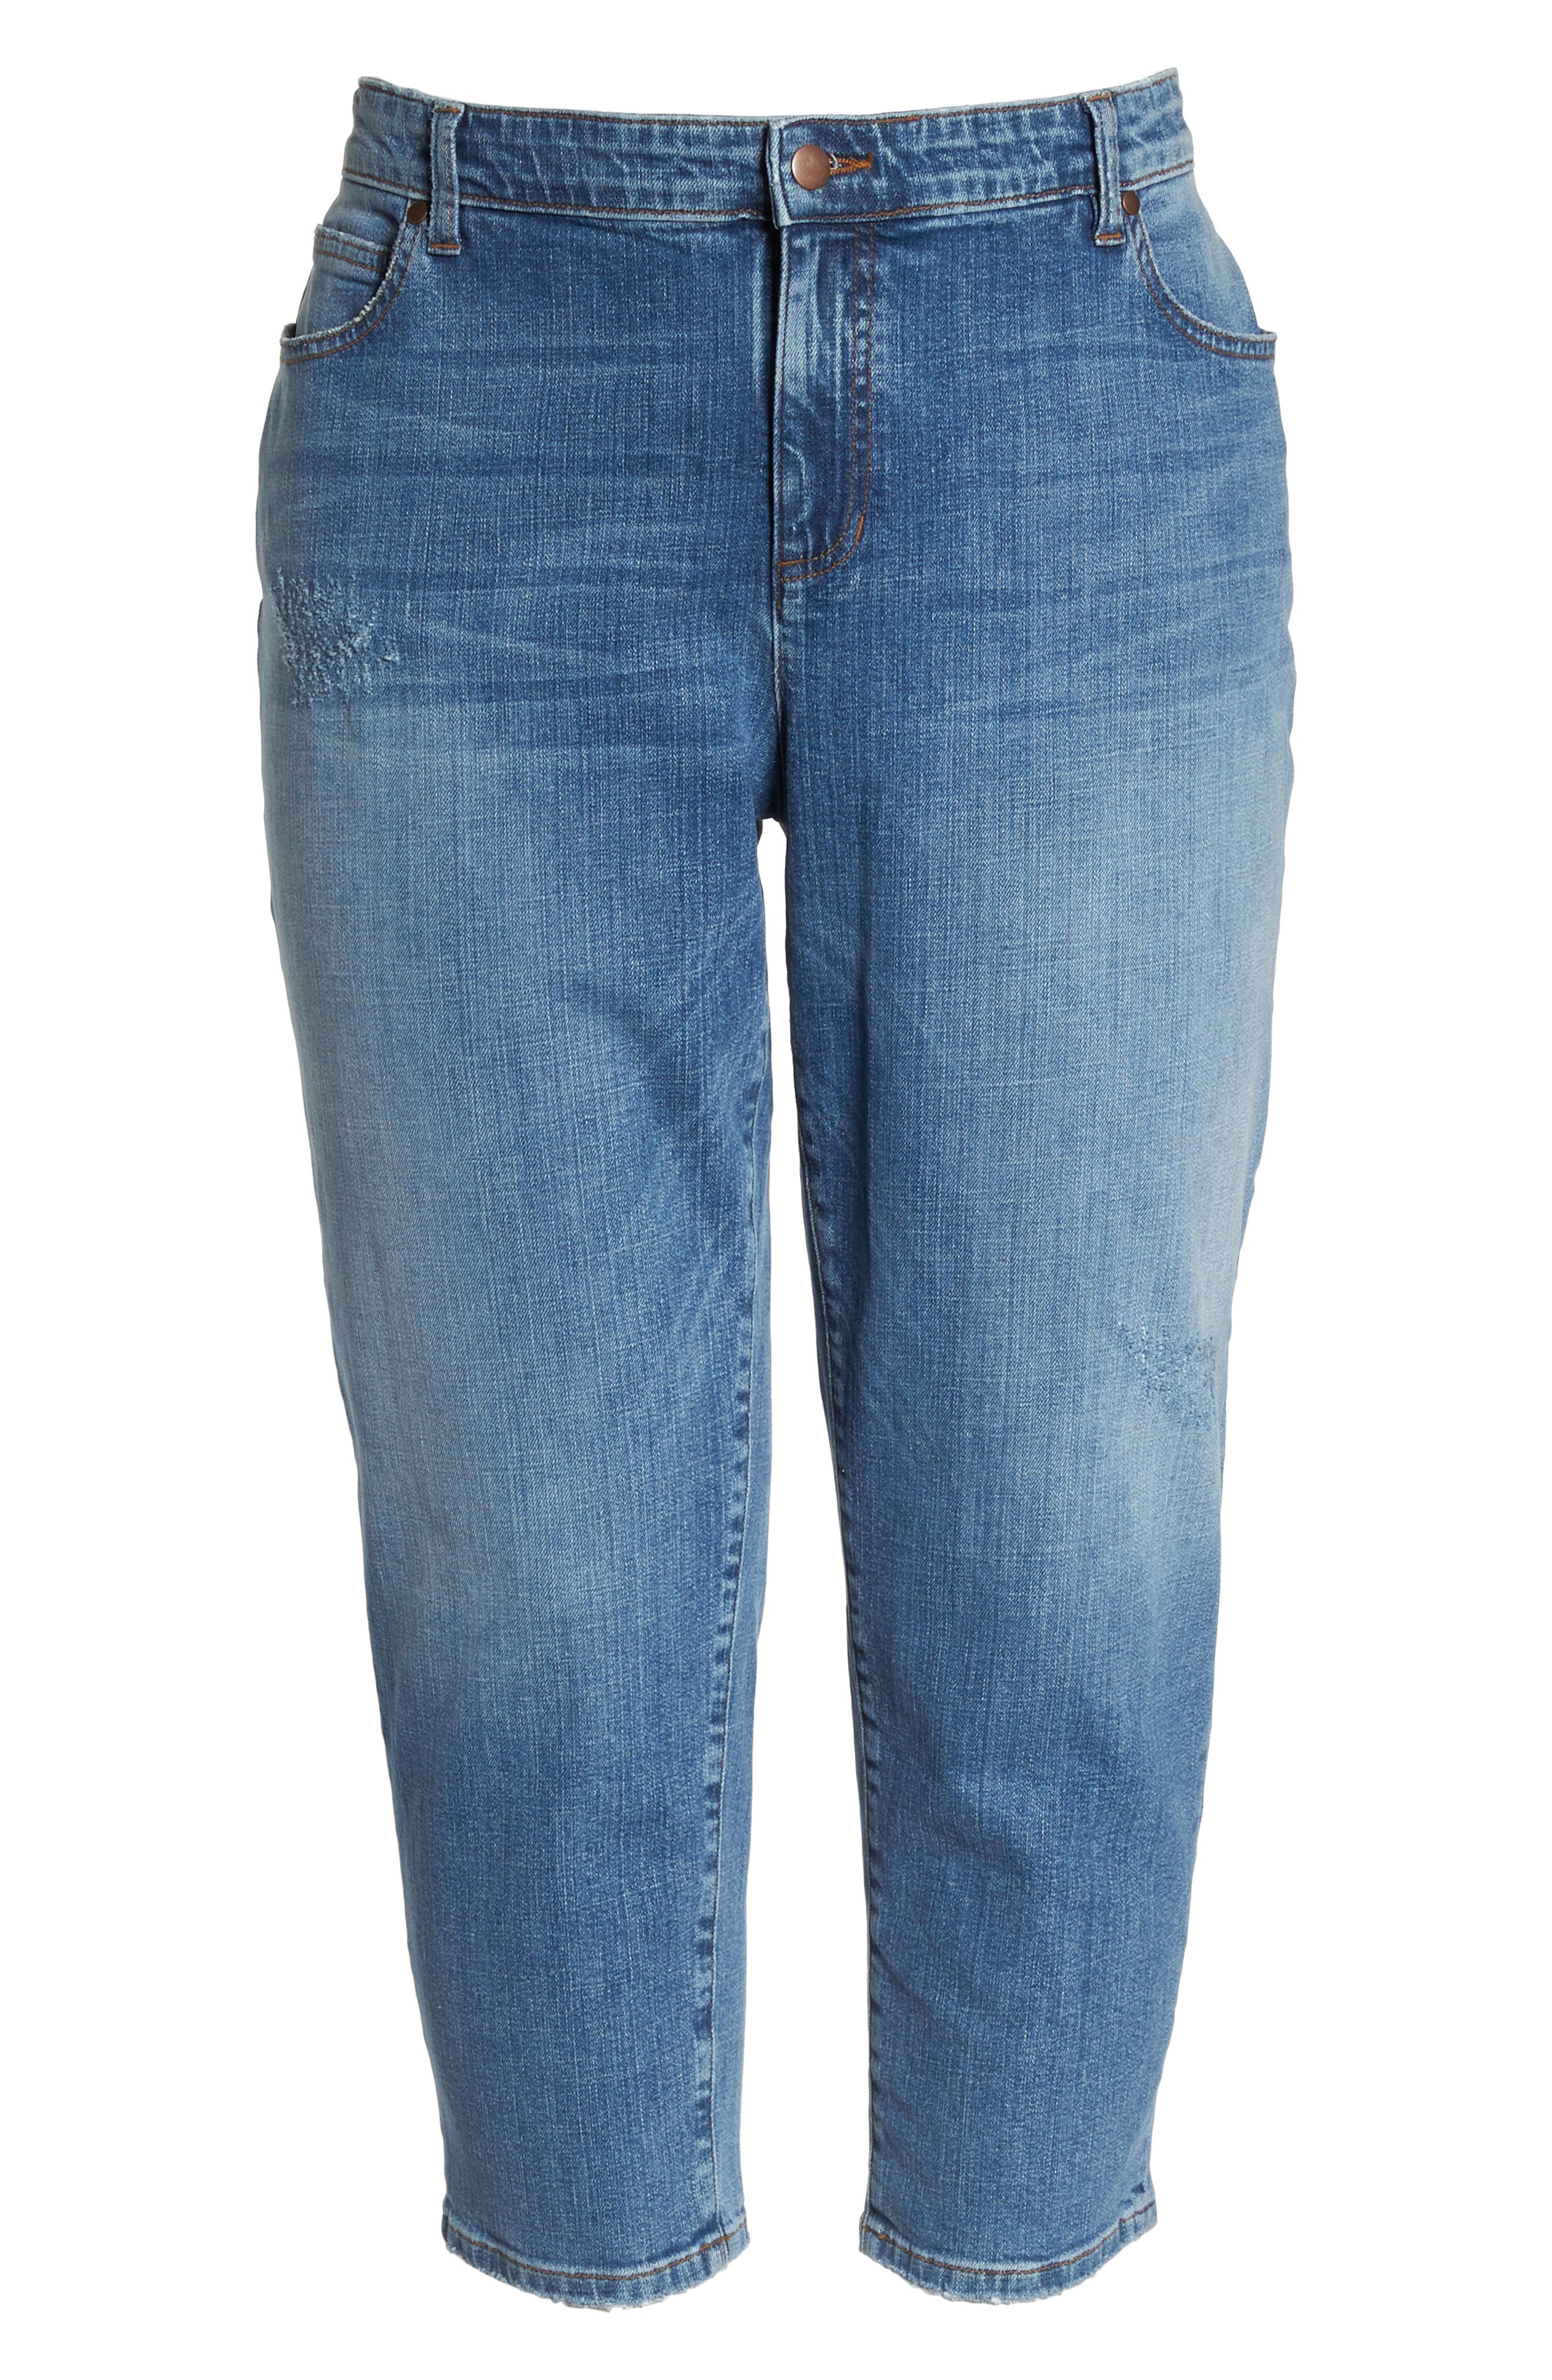 Tapered Crop Jeans,                             Alternate thumbnail 7, color,                             466